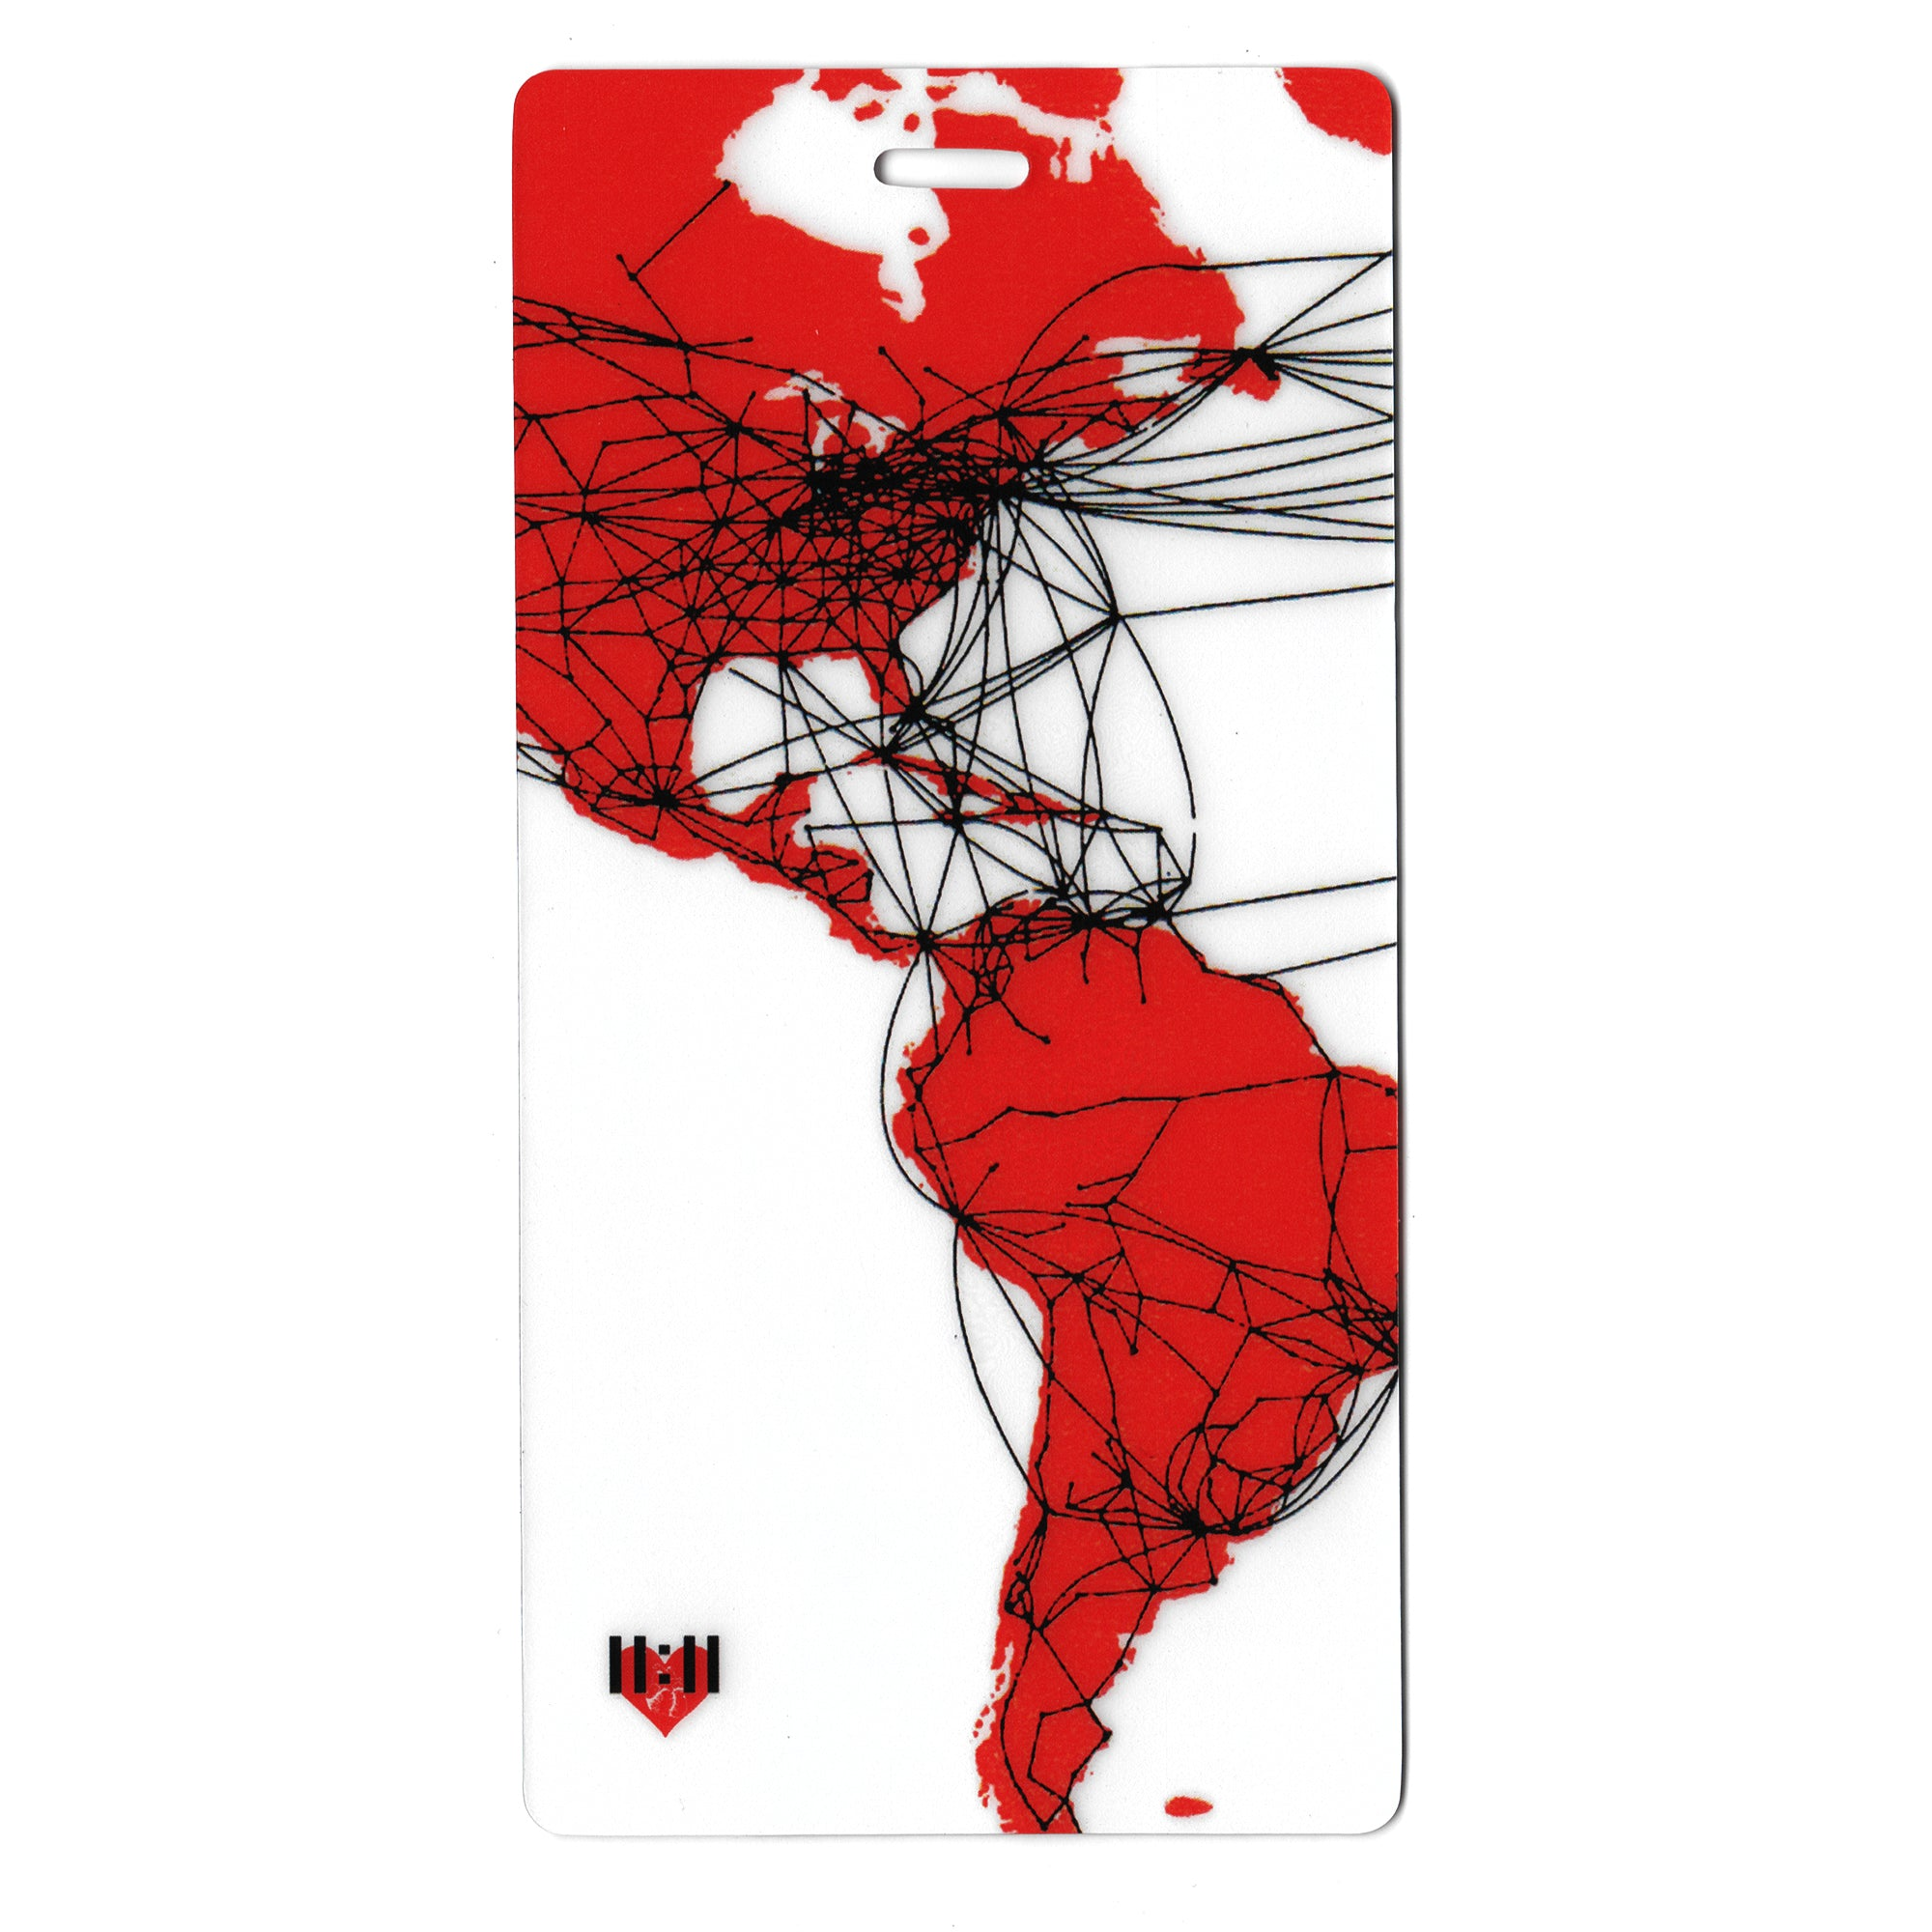 Airlines Route Map Luggage Bag Tag Set - 2 pc, Large by 11:11 Enterprises